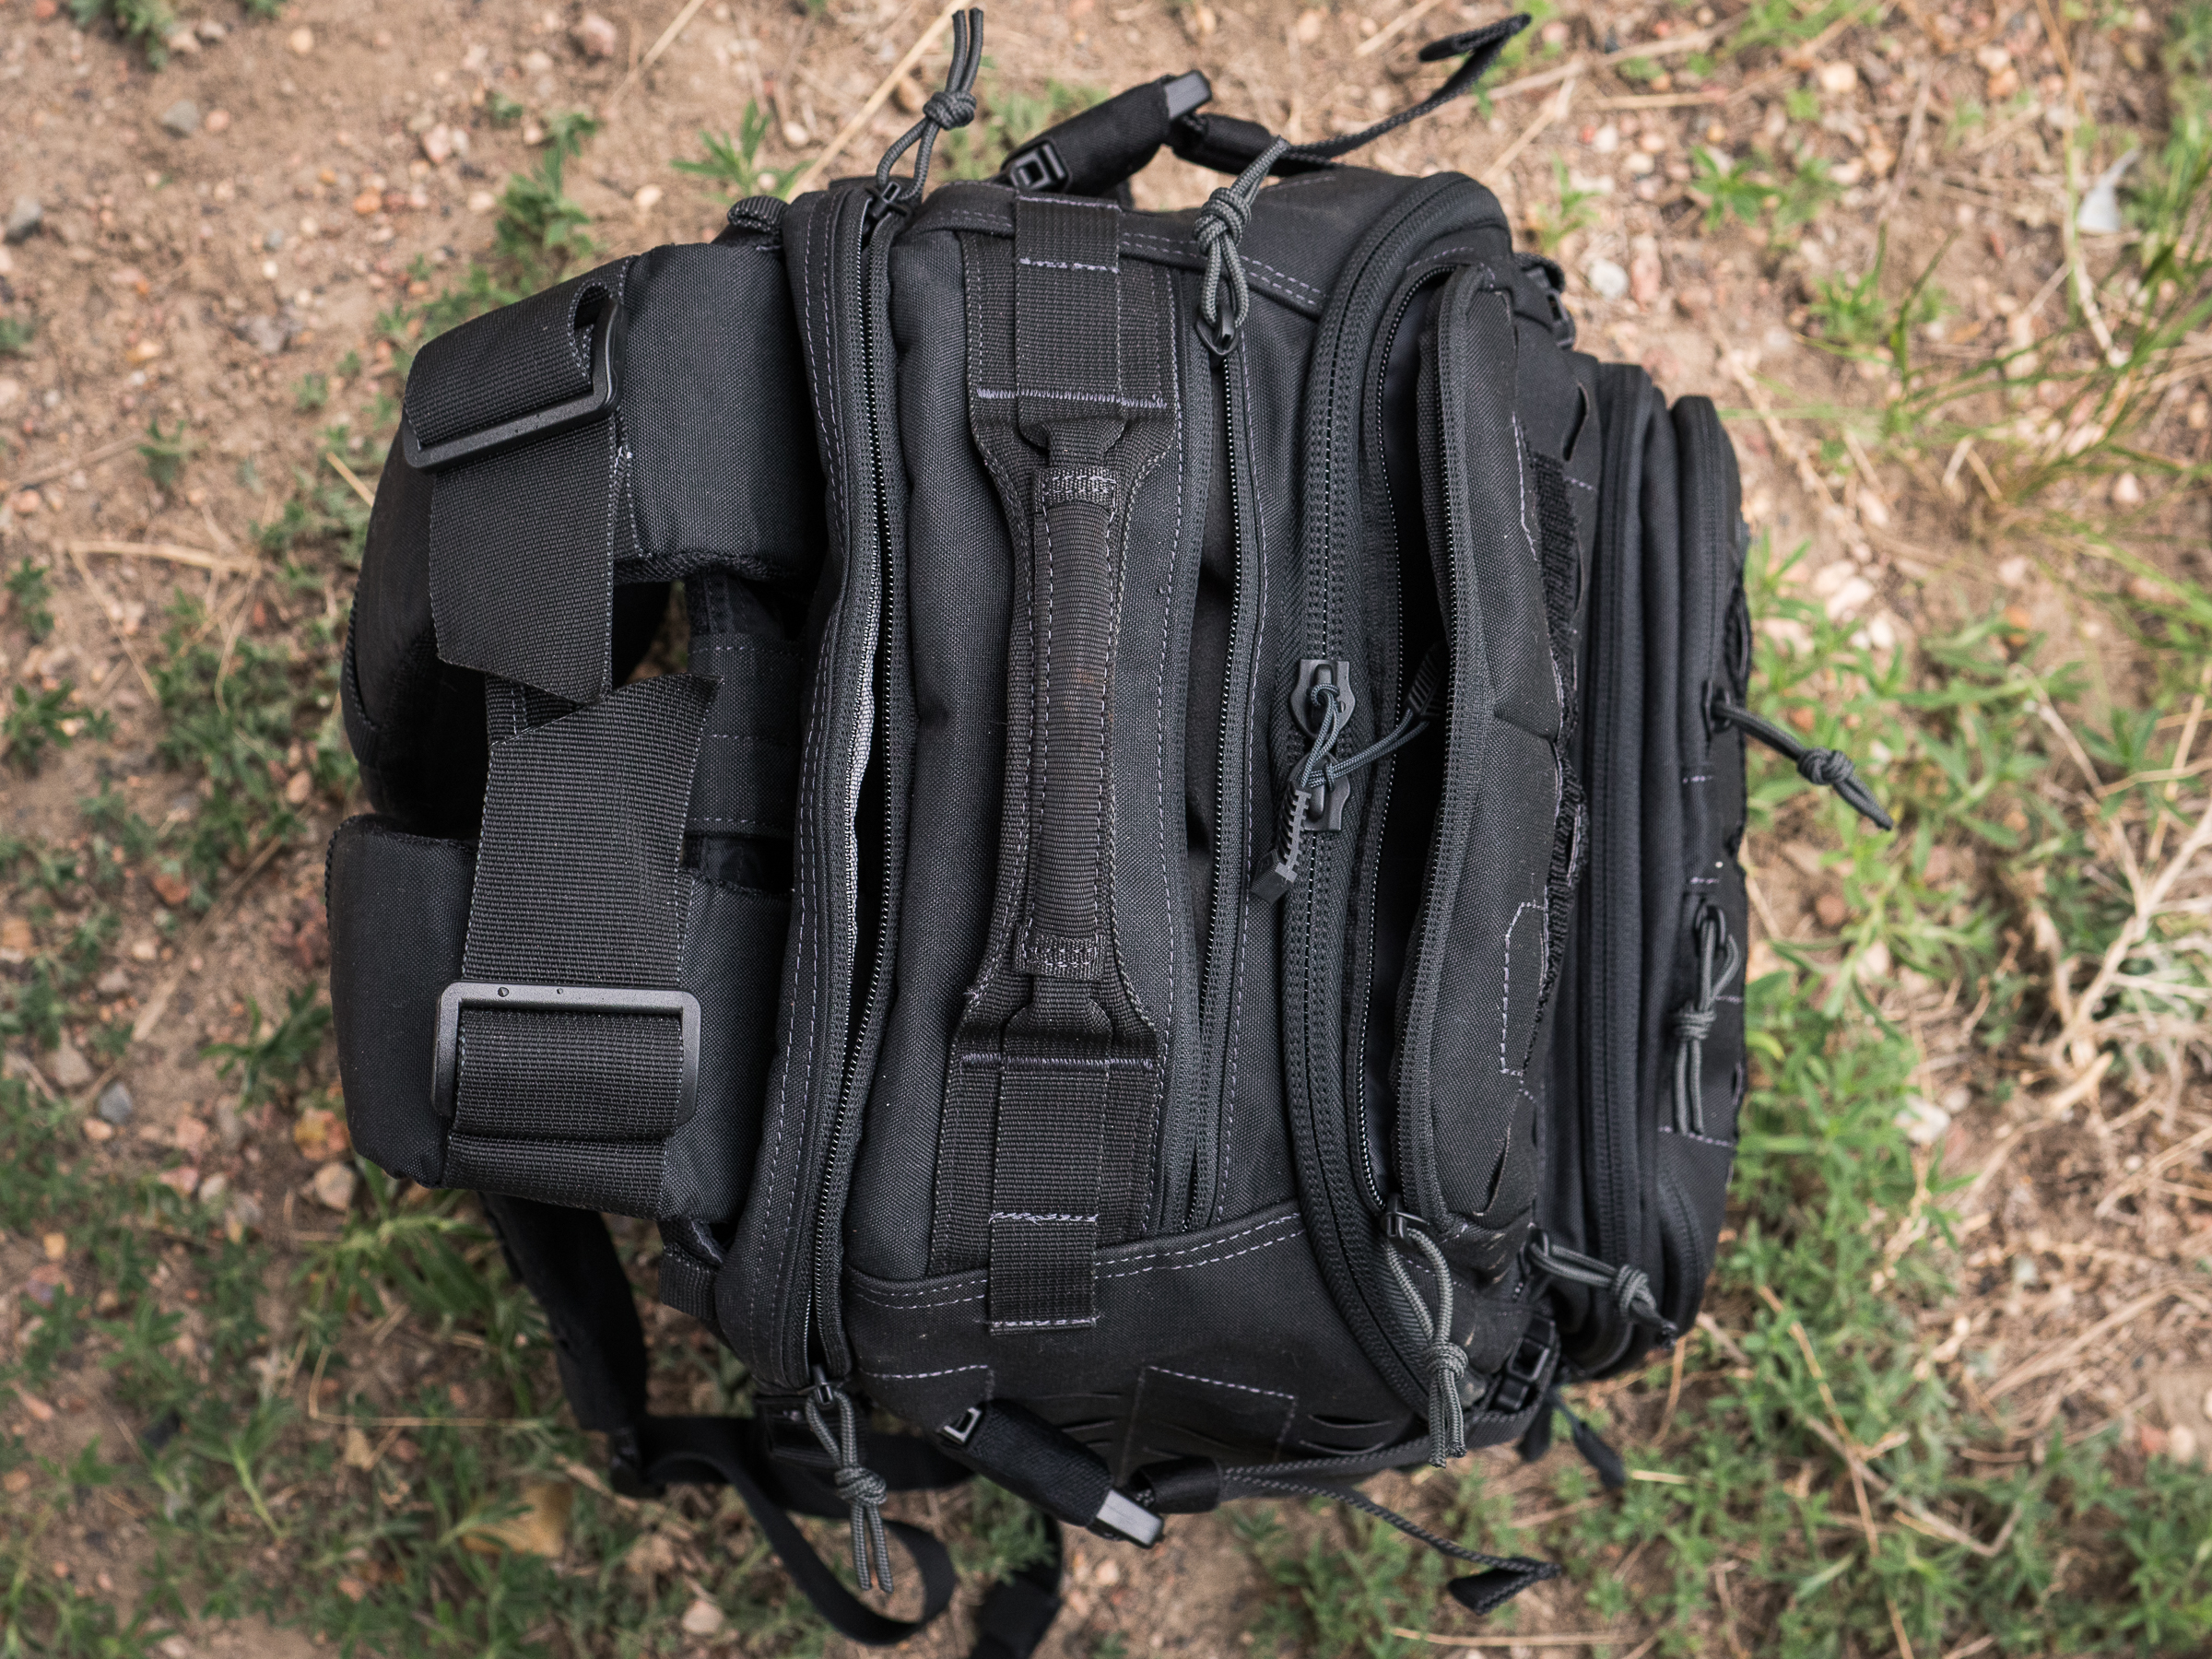 Tactix 1 Day Plus carry handle